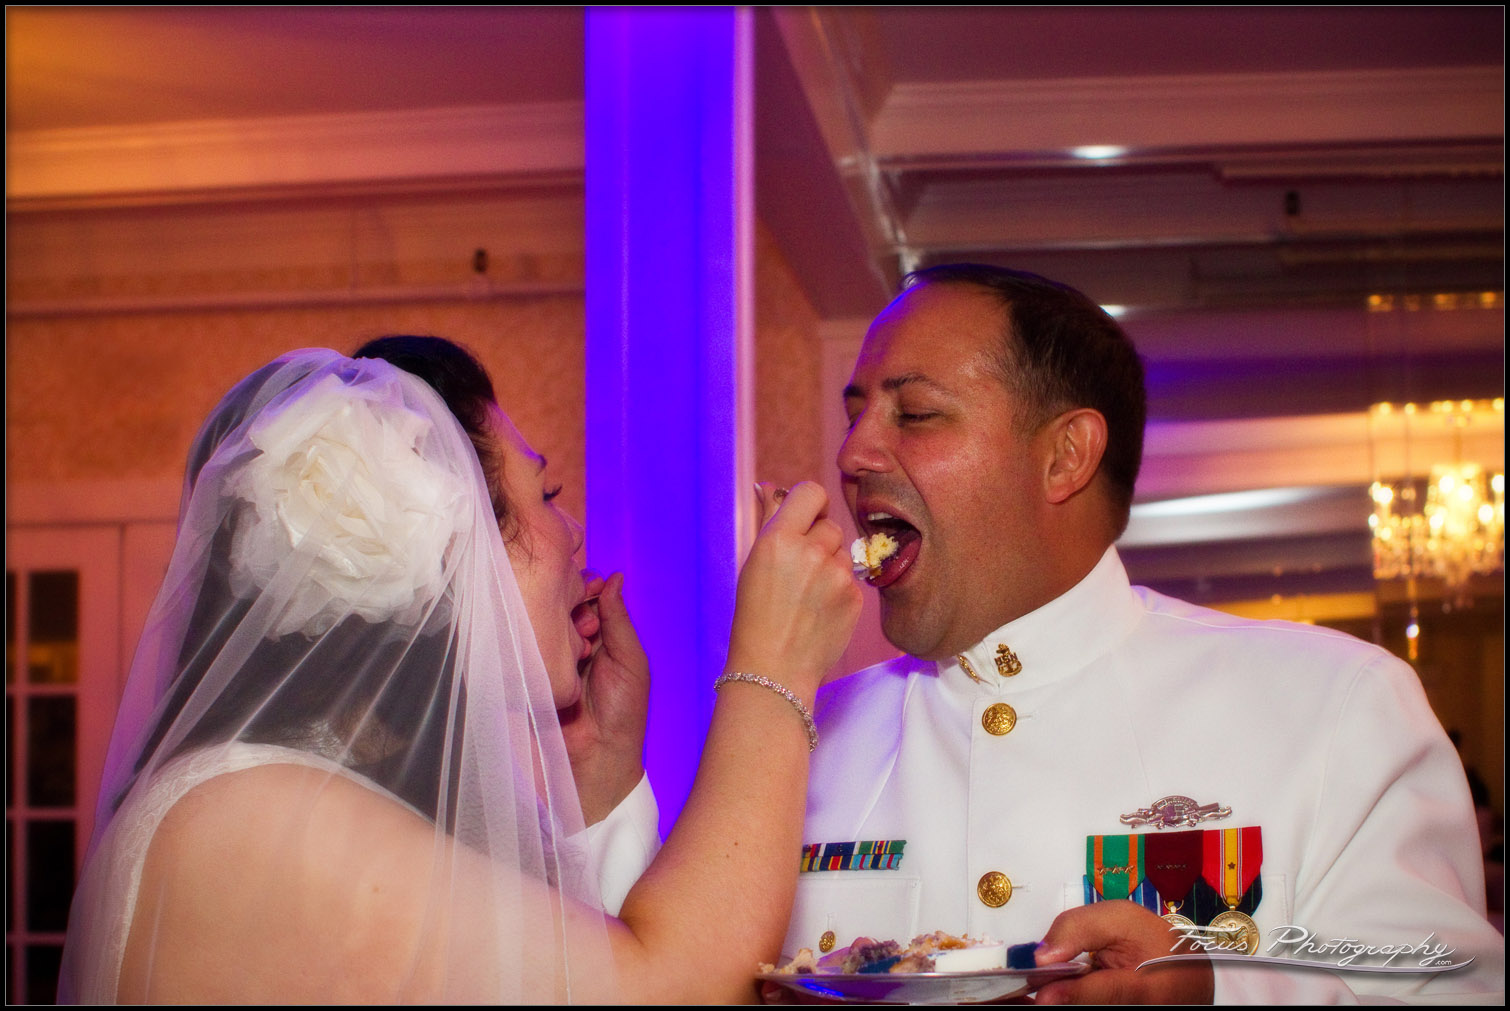 The bride and groom feed each other wedding cake